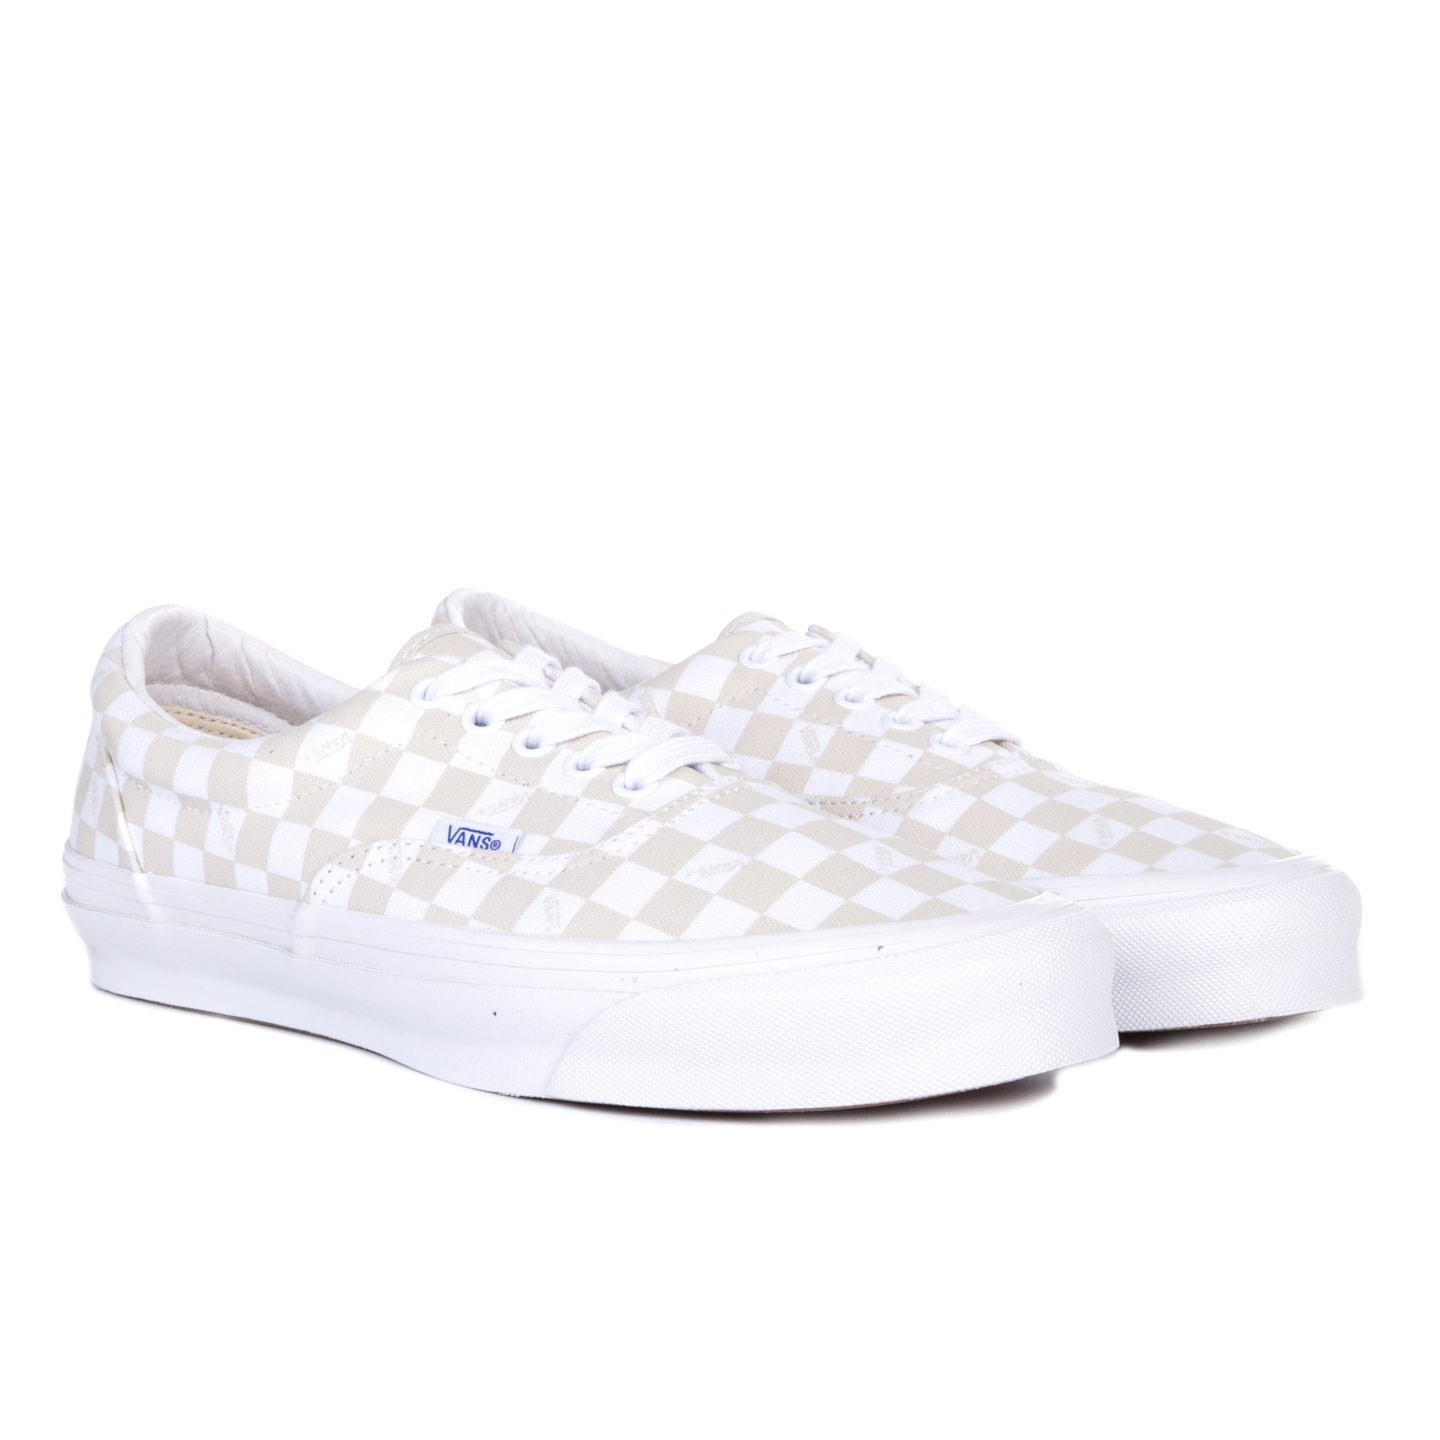 VAULT BY VANS ERA 59 VLT LX MT. VERNON PARISIAN NIGHT / MARSHMALLOW